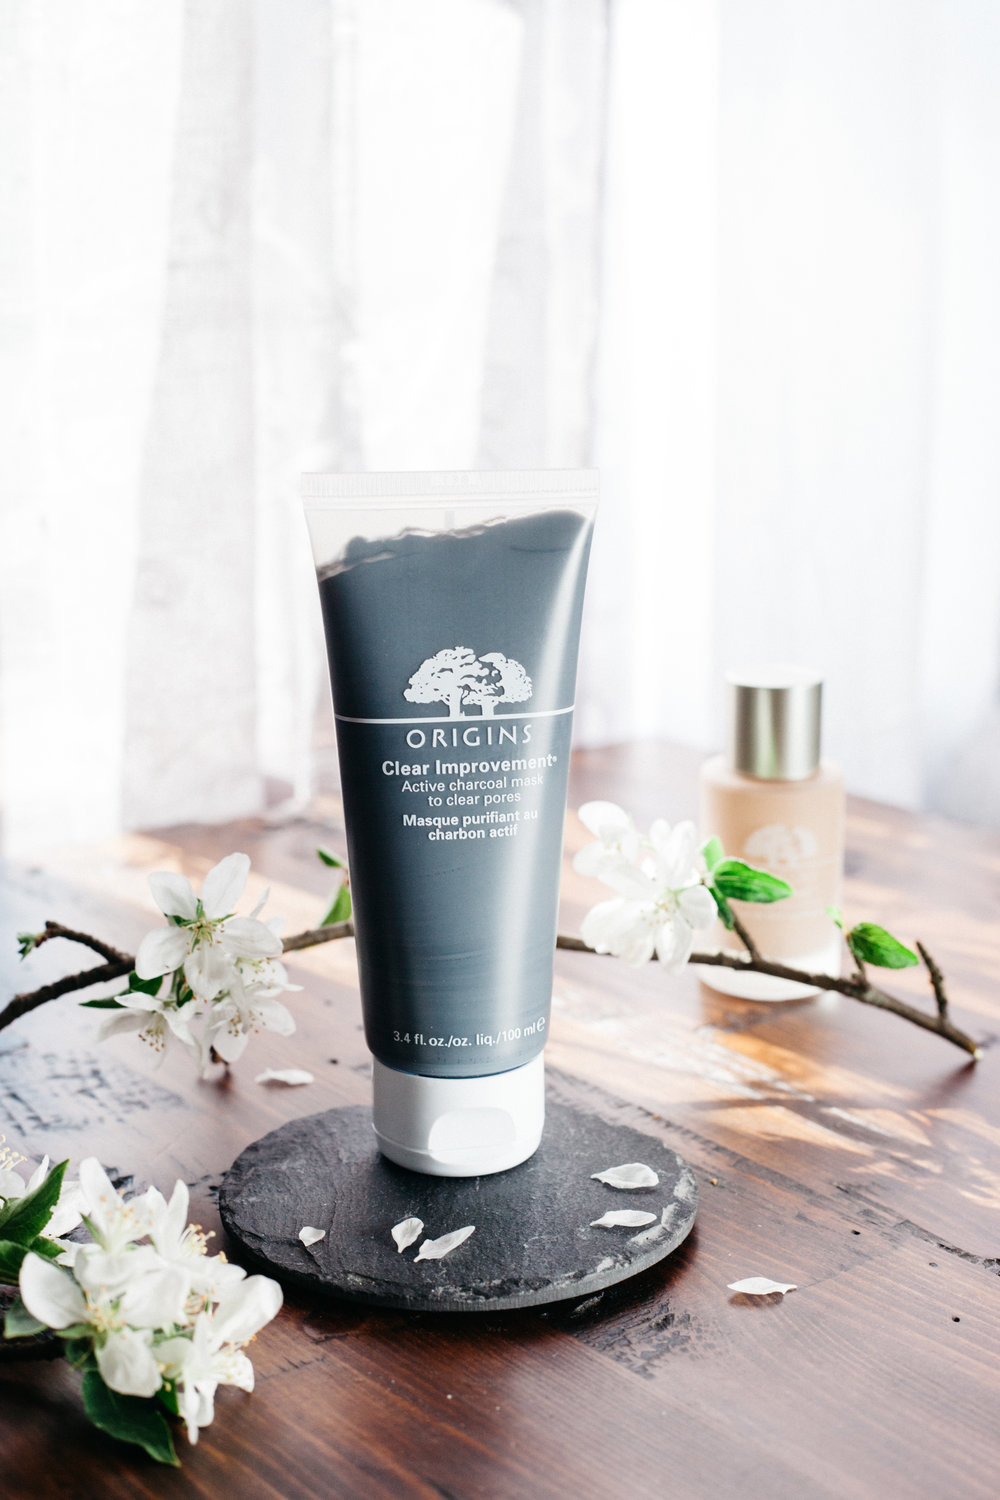 """Nature's complexion clean-up crew clears the way for skin to act its best. Bamboo Charcoal acts like a magnet to draw out deep-dwelling pore-cloggers, White China Clay absorbs environmental toxins, Lecithin dissolves impurities. Skin looks clear, feels perfectly pure."" -Origins"